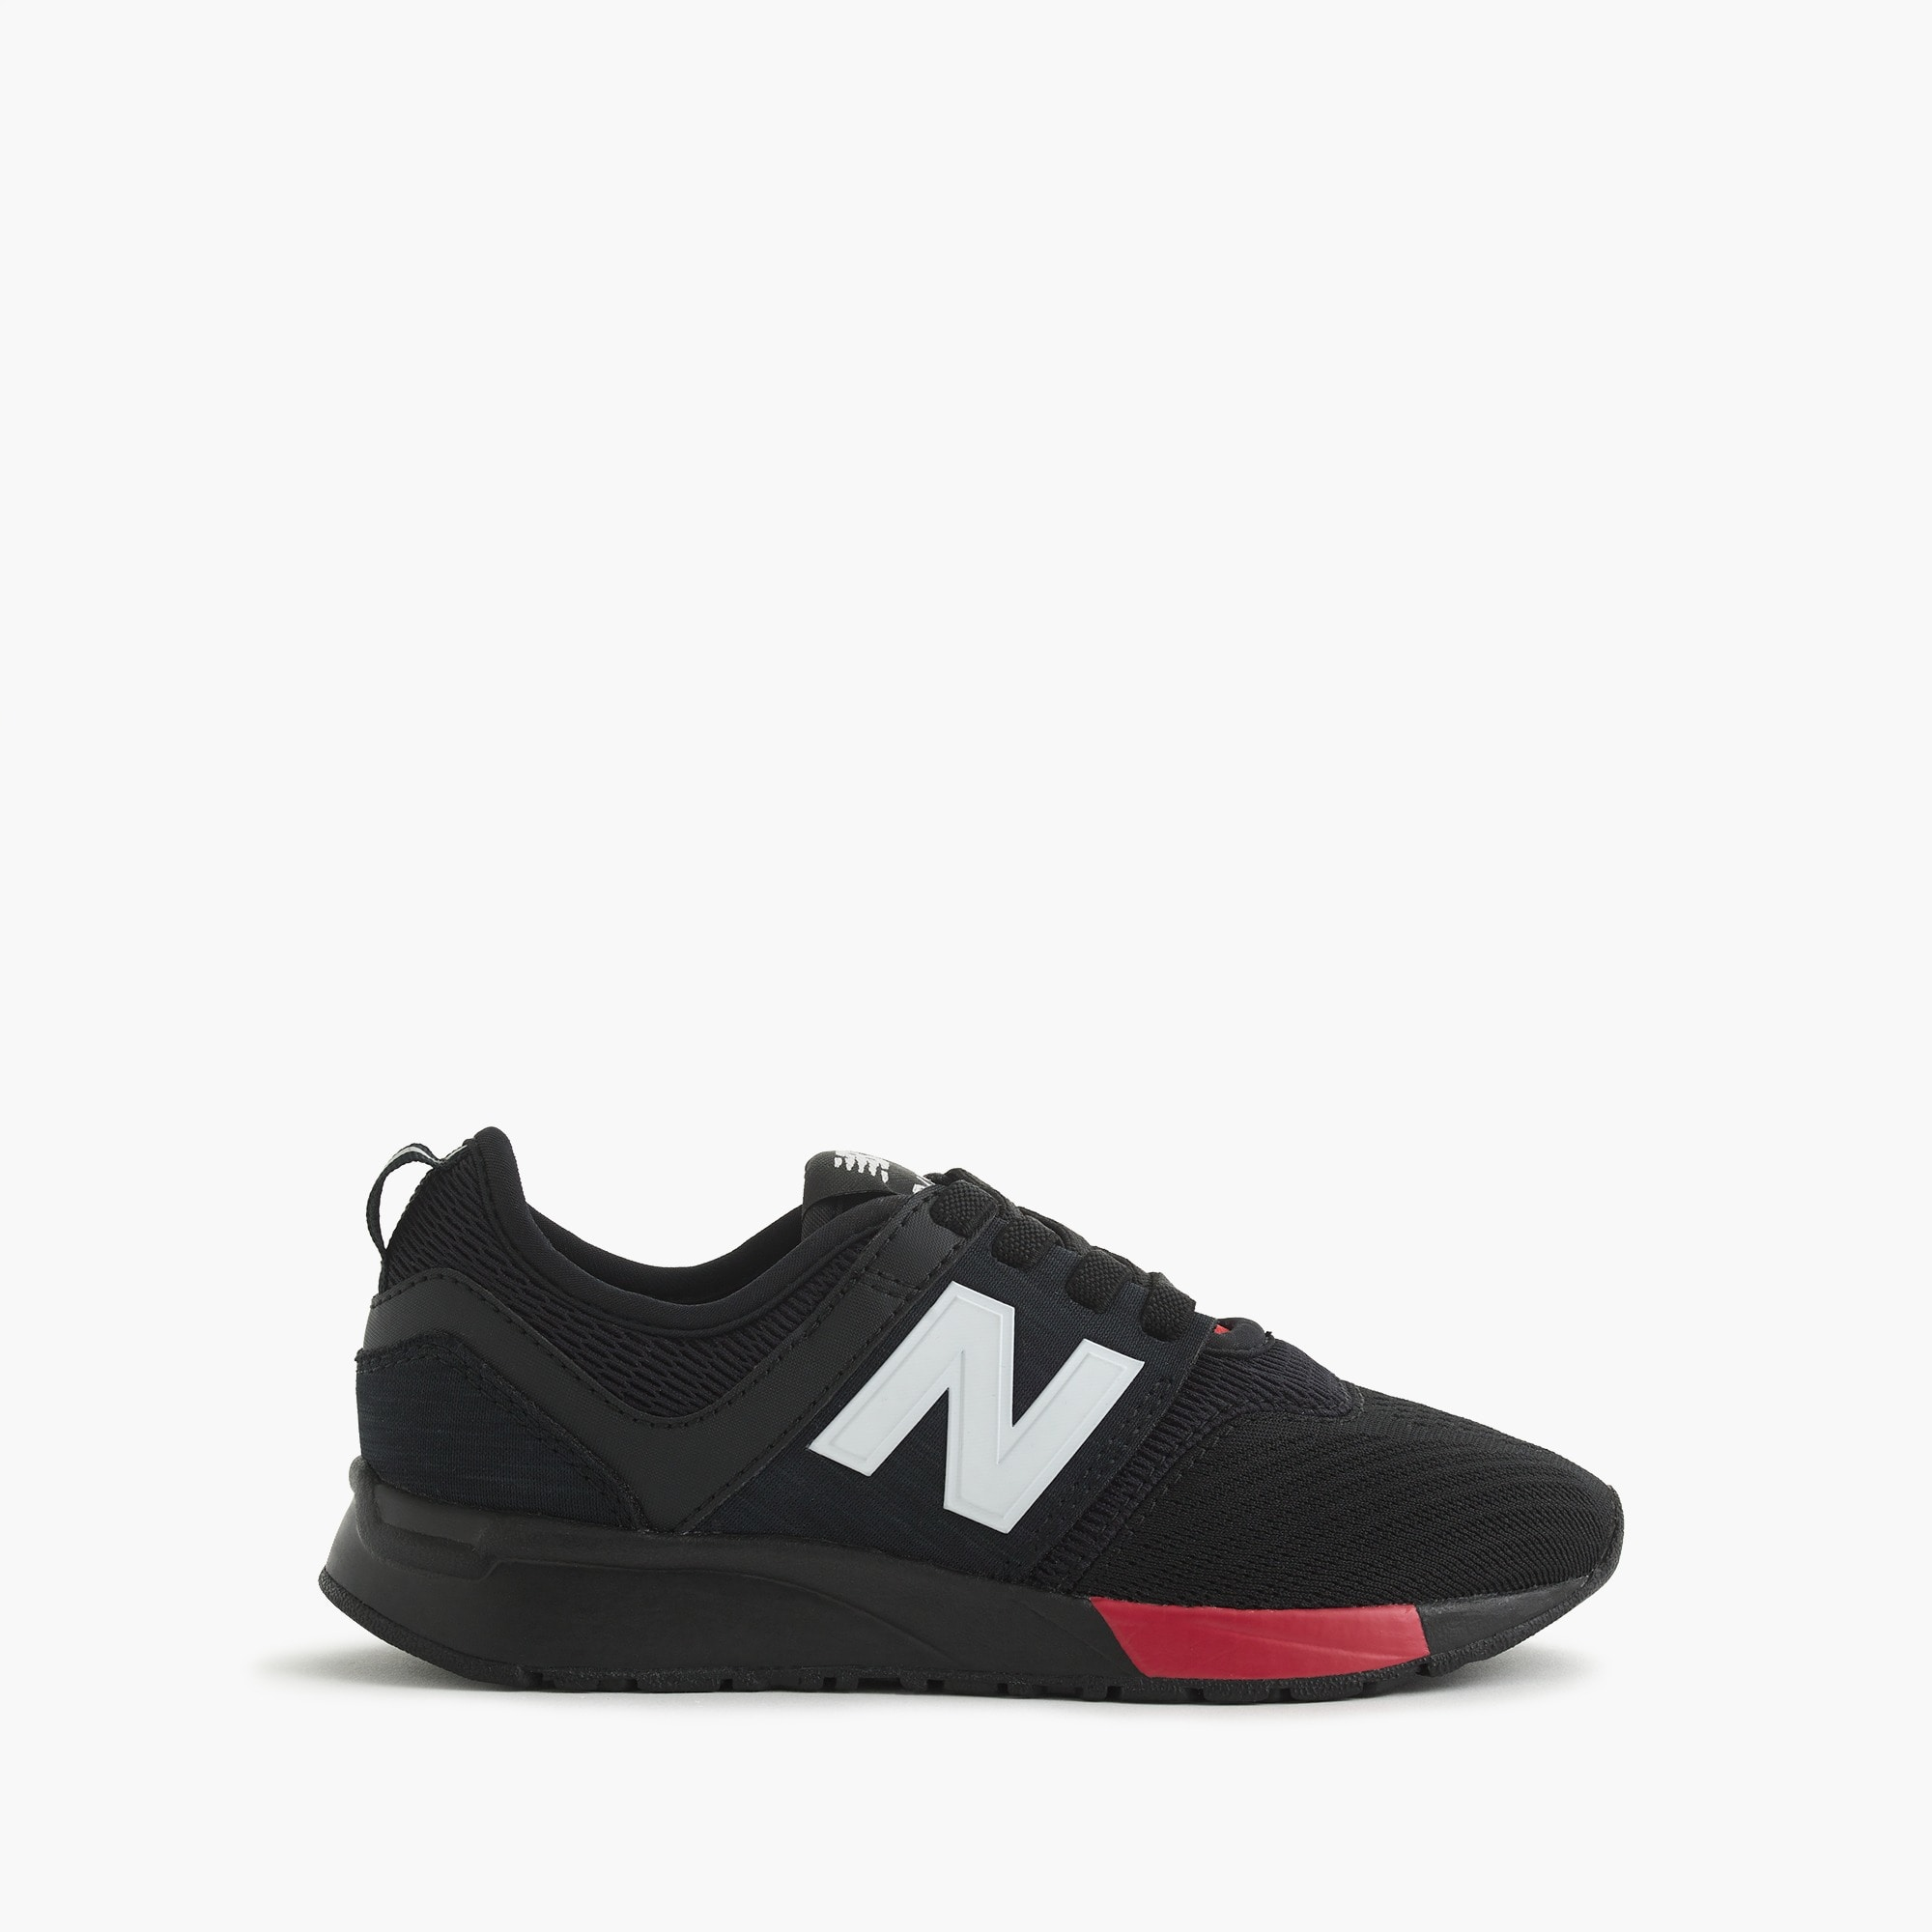 Kids' New Balance® for crewcuts 24/7 sneakers with no-tie laces